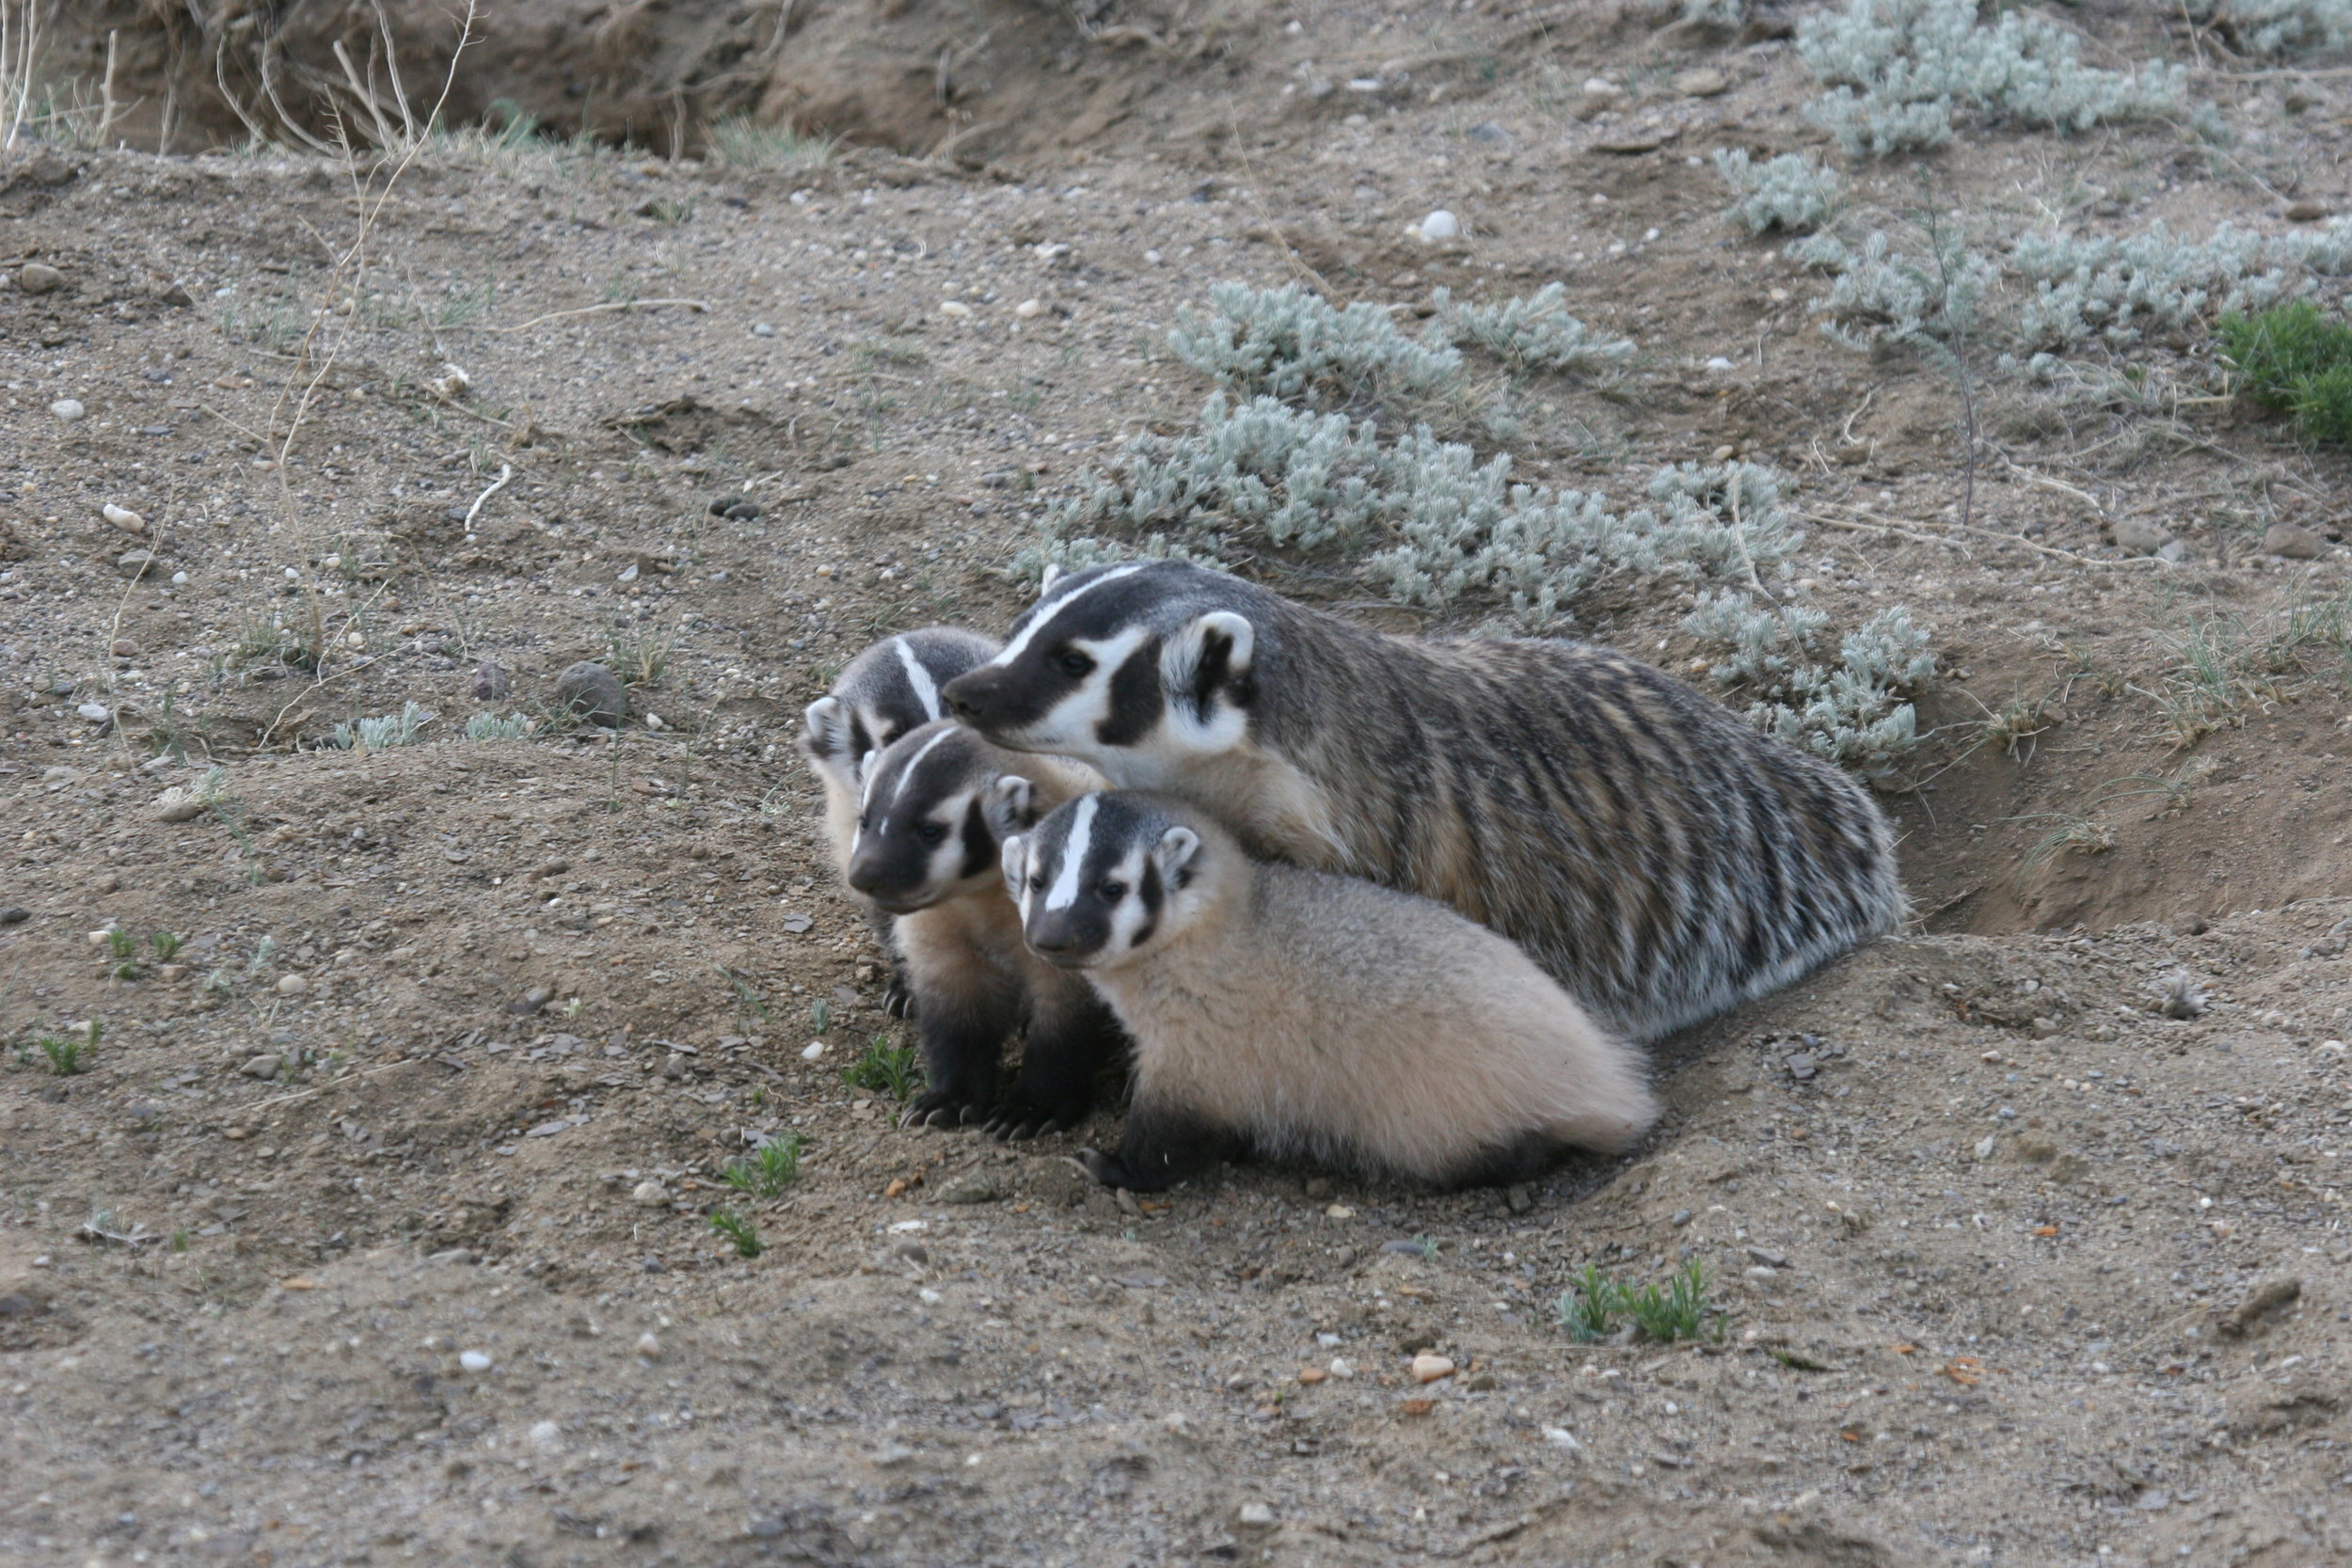 This badger mother must hunt almost nonstop to feed her growing offspring.  ©John Hoogland 2012